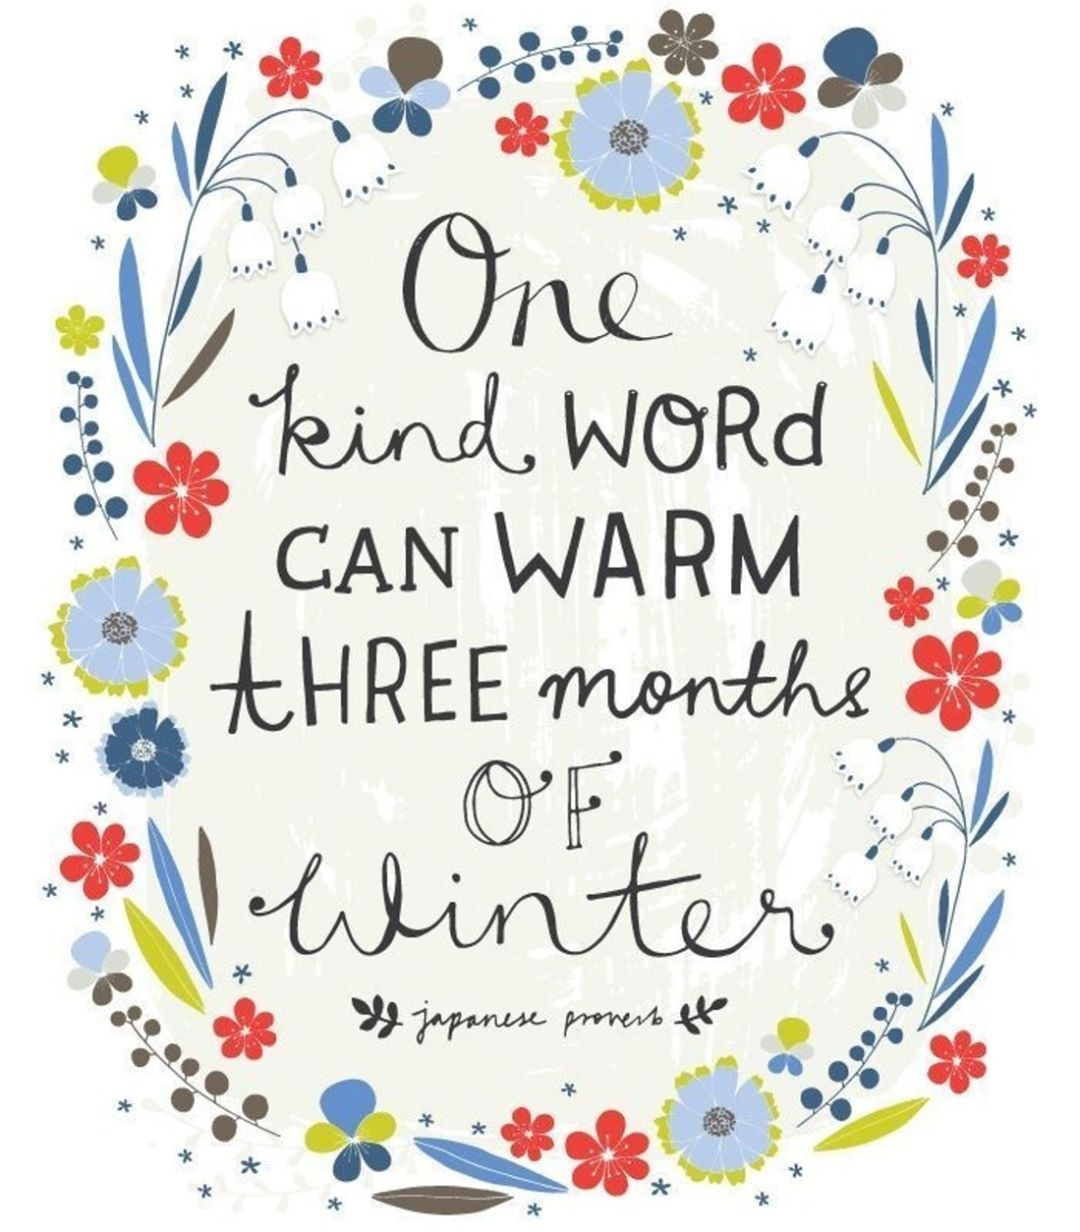 Child Care Quotes Cold Kindness Beautiful Winter Quotes Kids Children Family